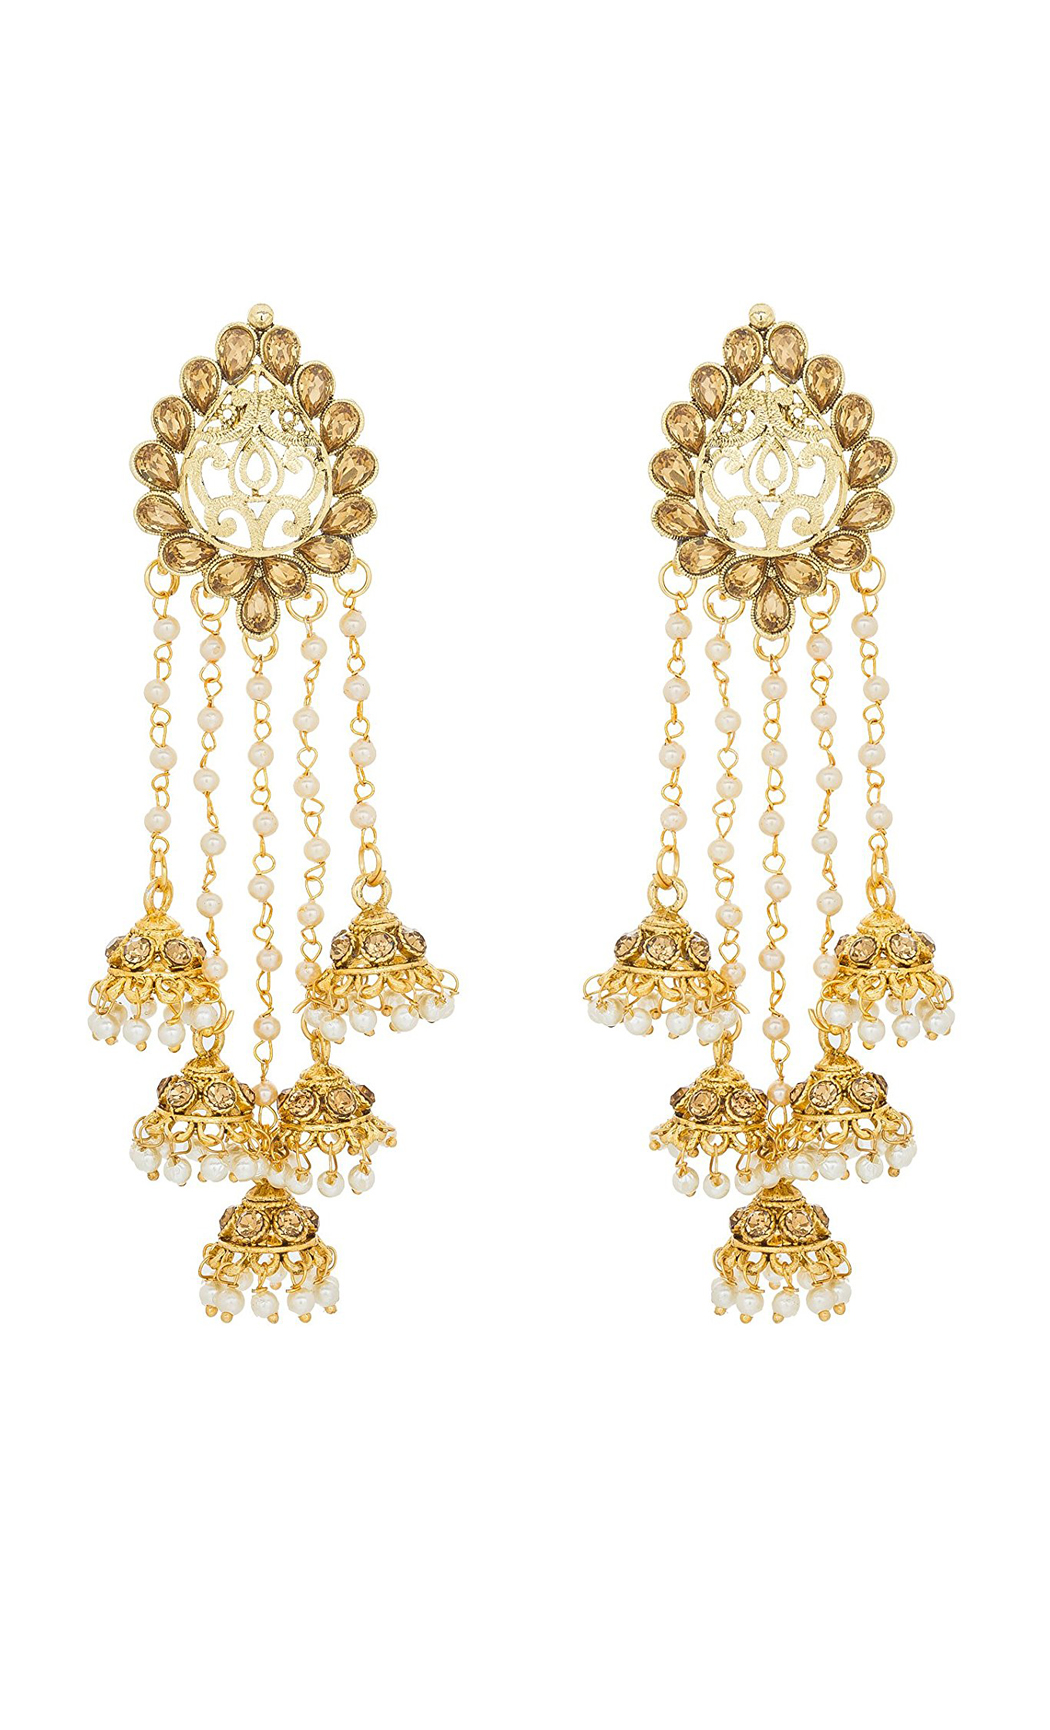 Gold Dangler Earrings with Pearls and Semi-Precious Stones - Shop Online